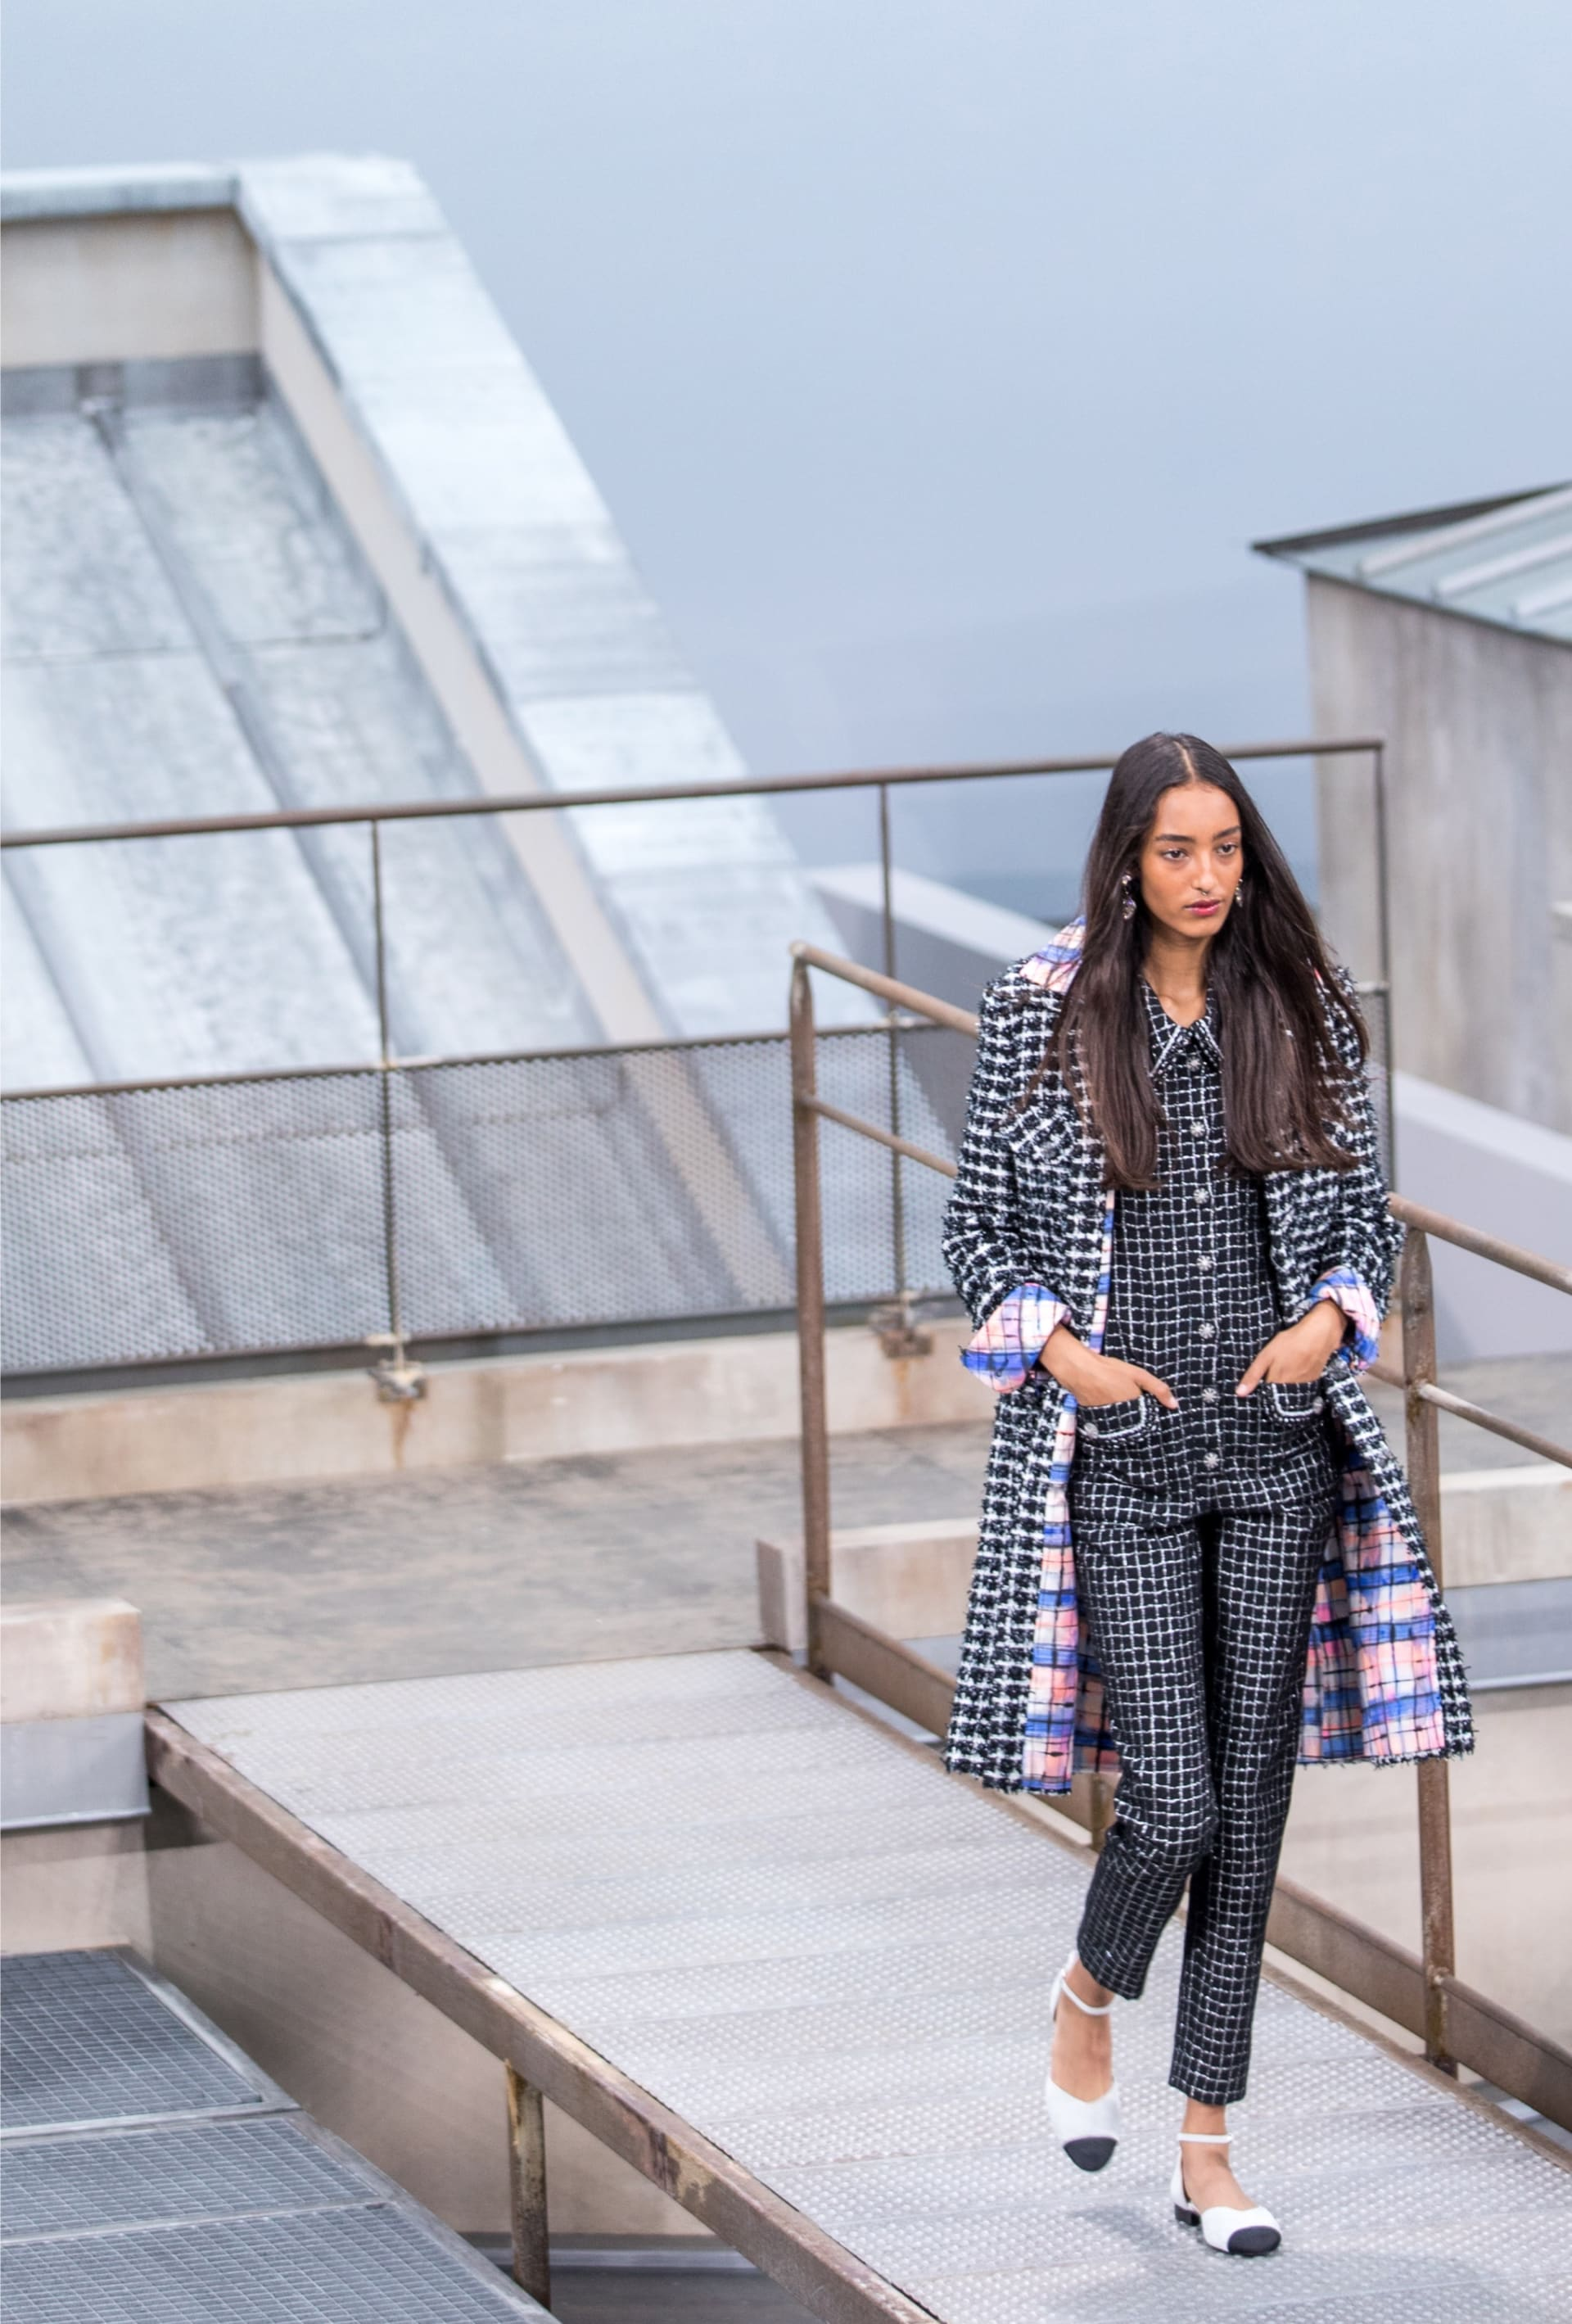 View 3 - Look 14 - Spring-Summer 2020 - see full sized version